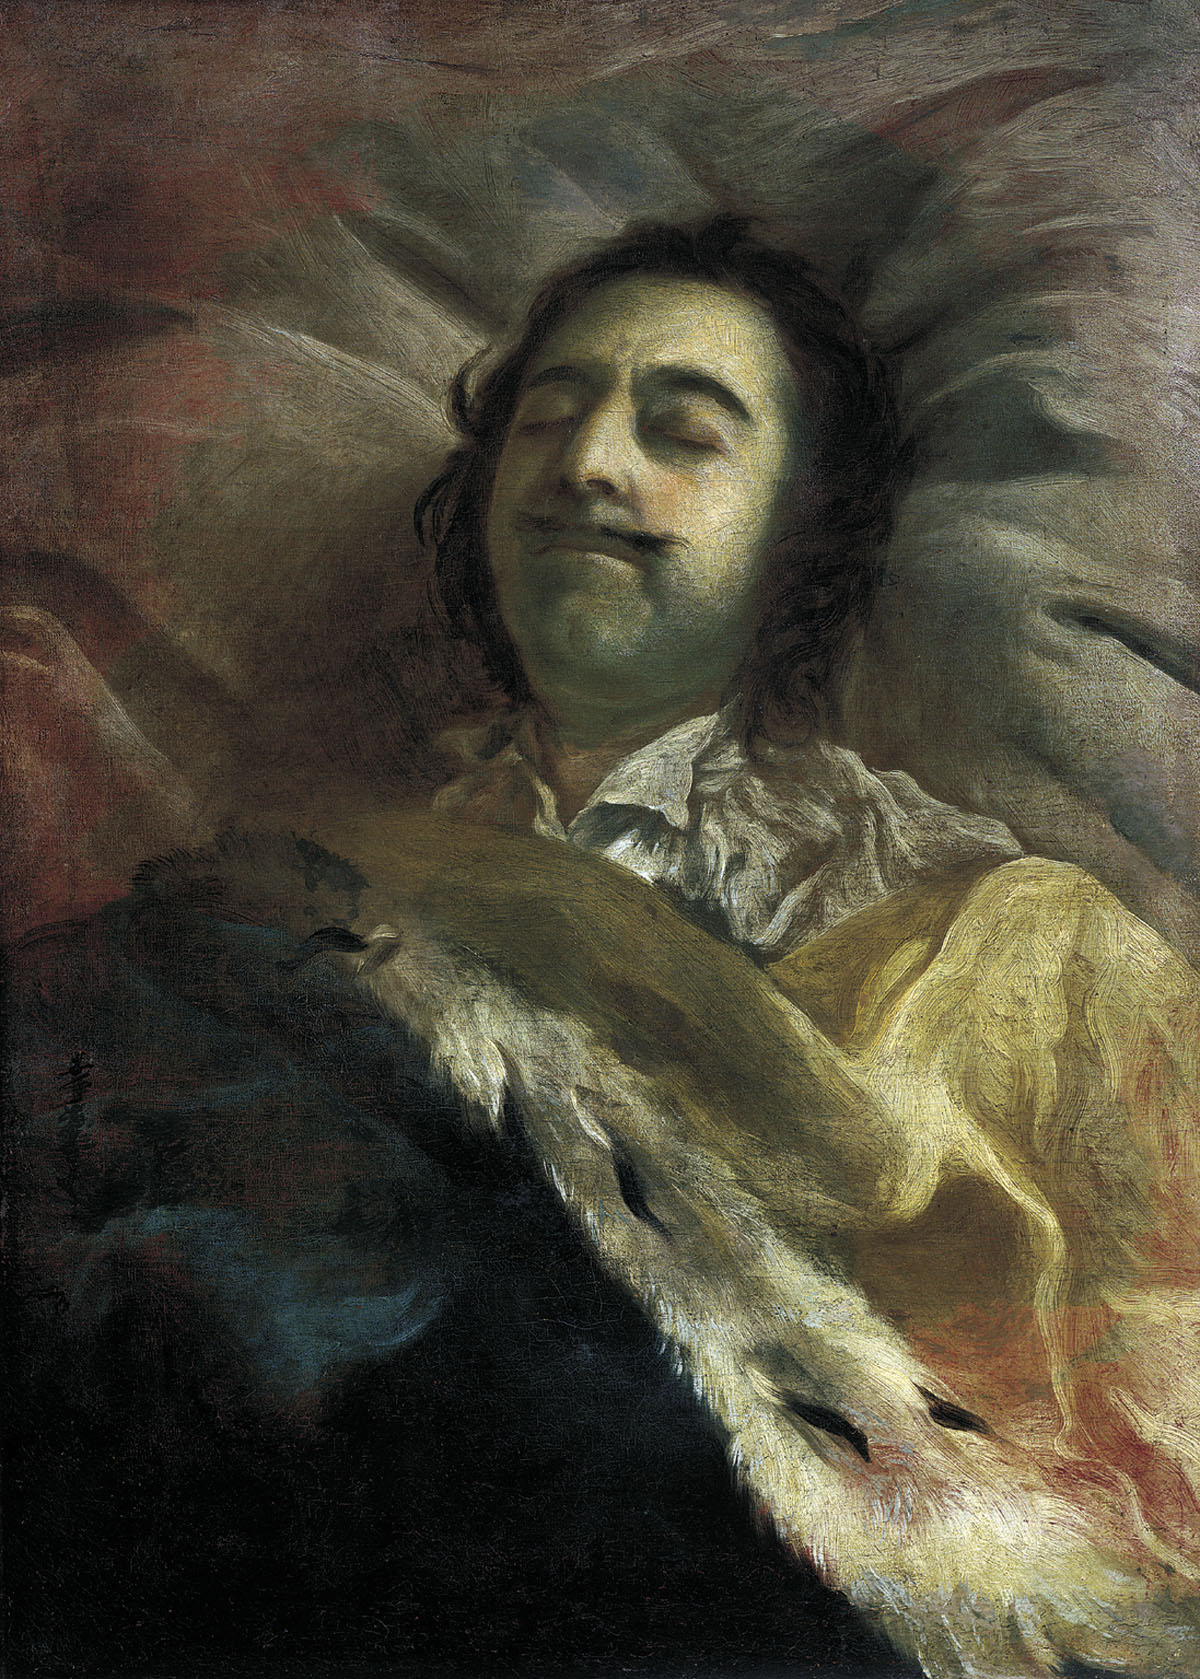 Ivan Nikitich Nikitin. Portrait of Peter I the Great on his deathbed. 1725. Russian Museum